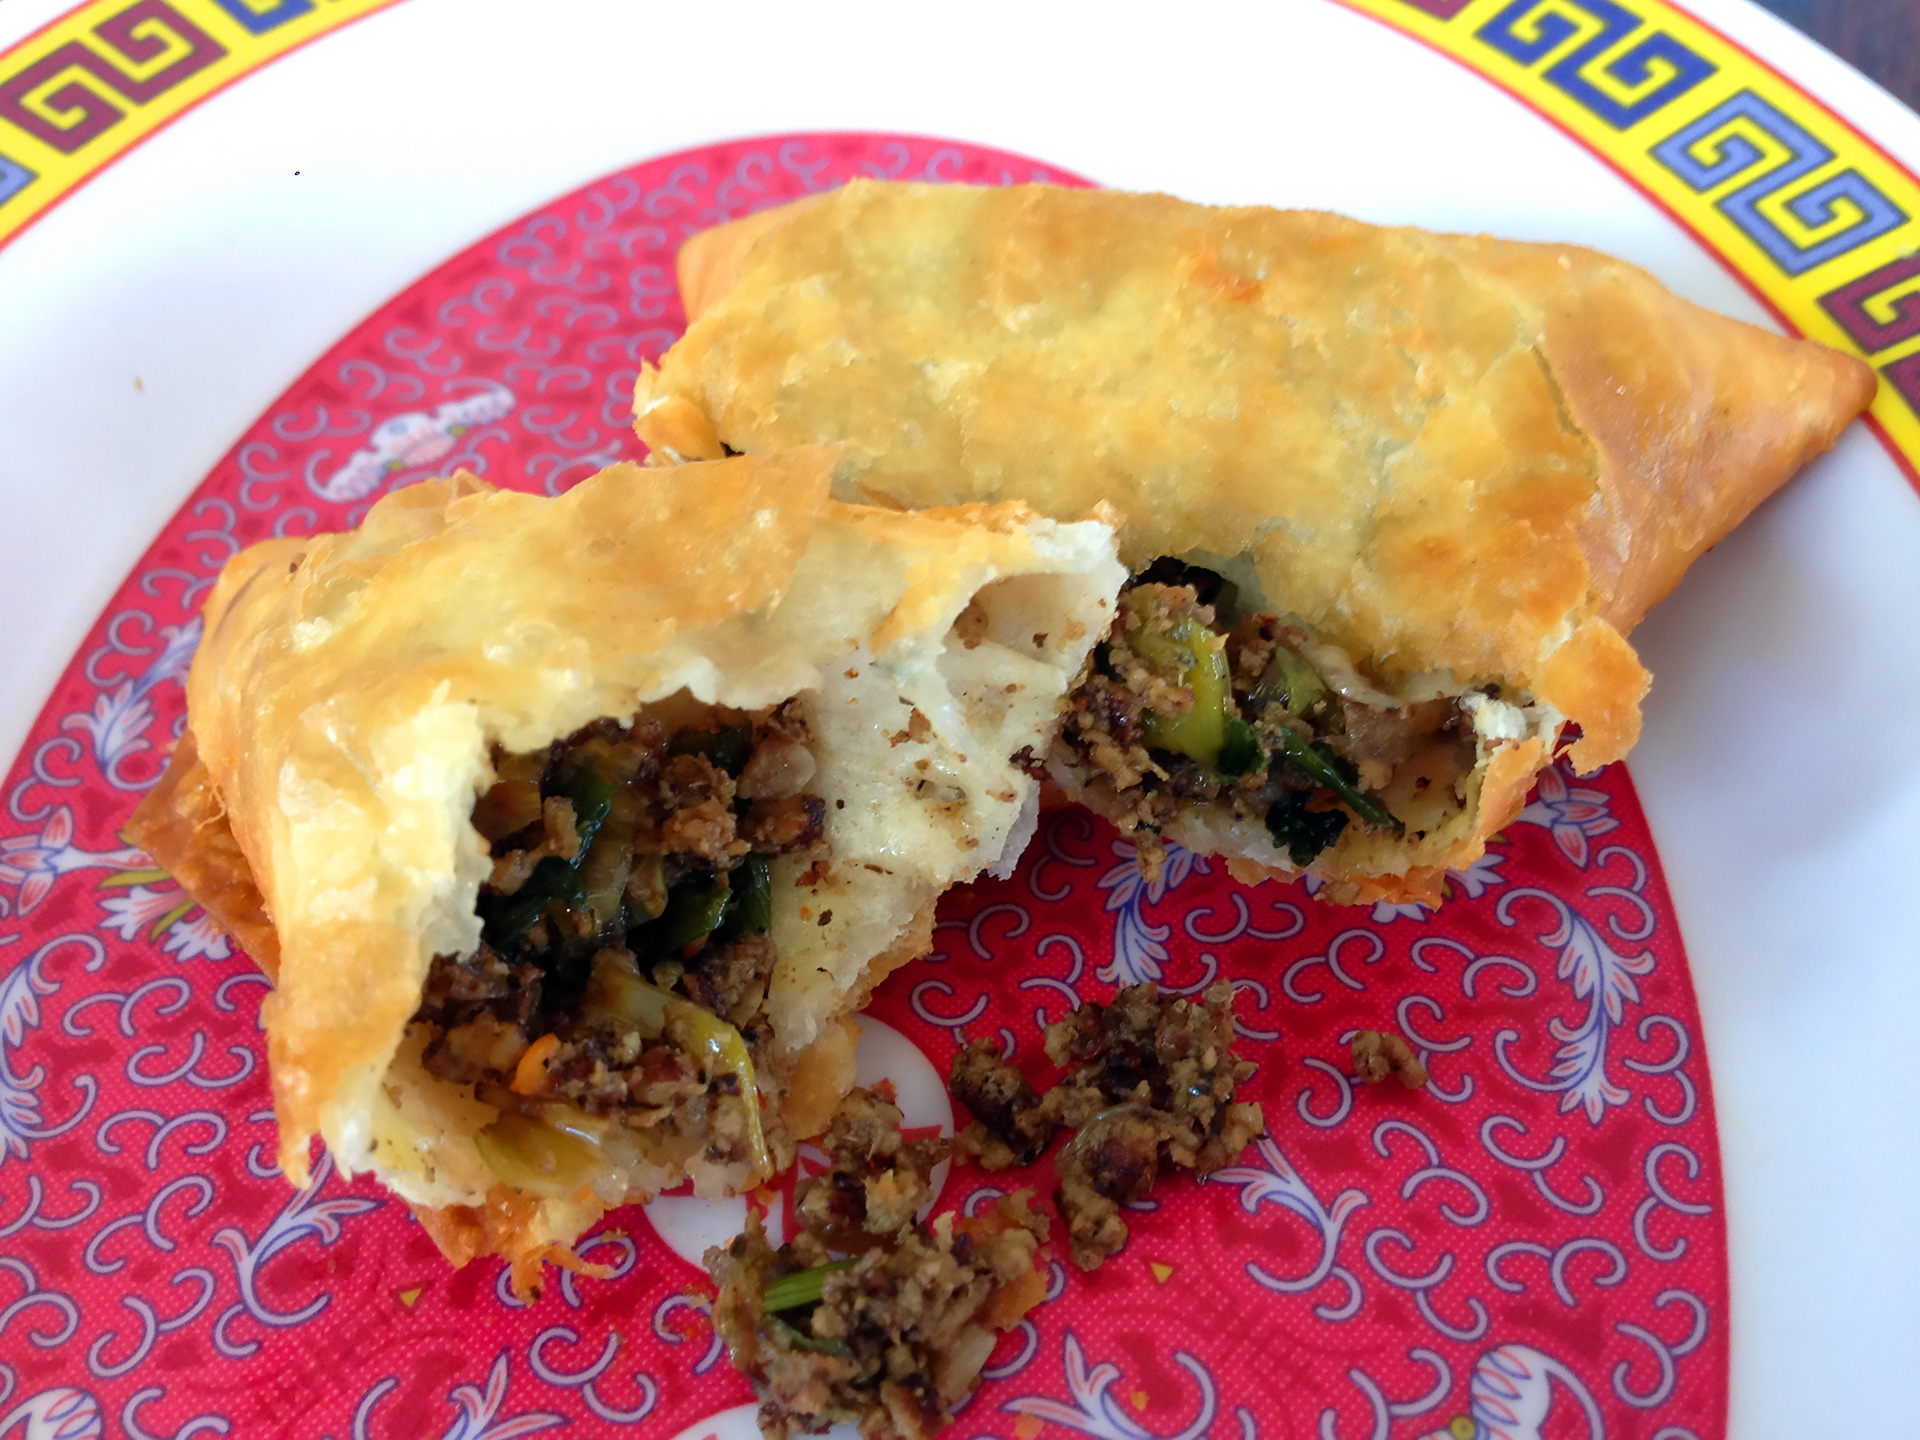 The ground beef filling of the sambusa.